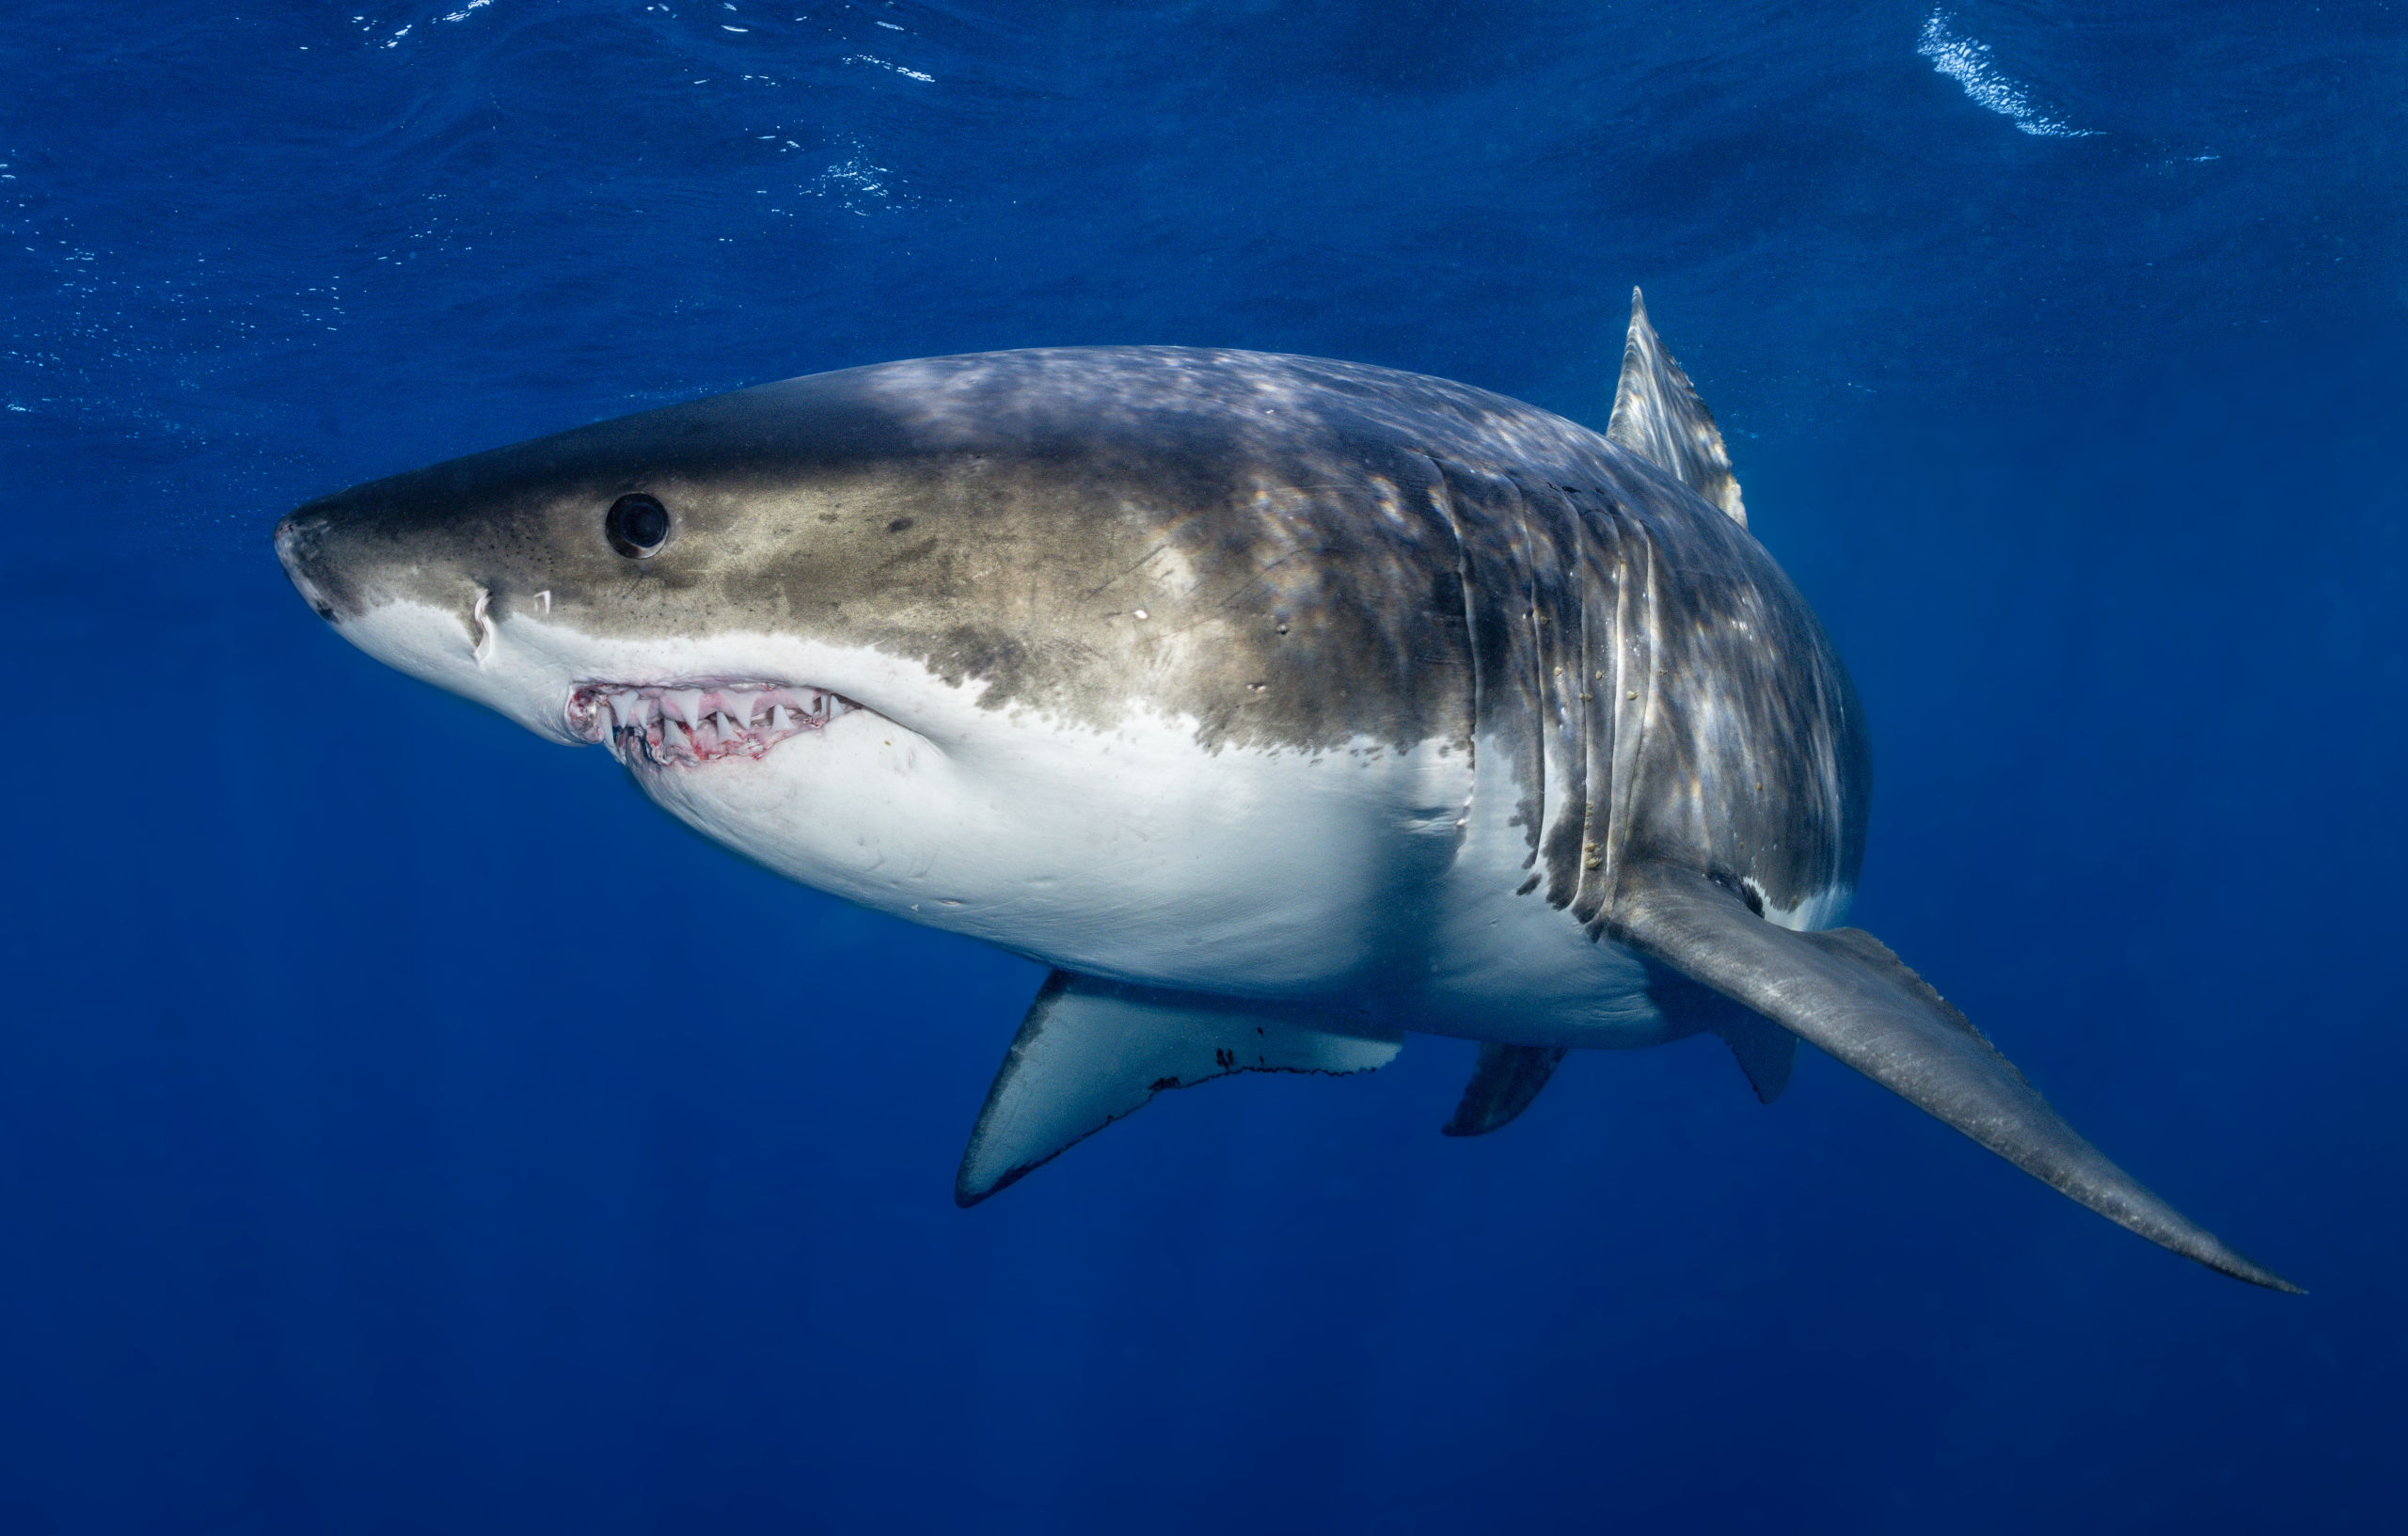 Great white patrols near the cage